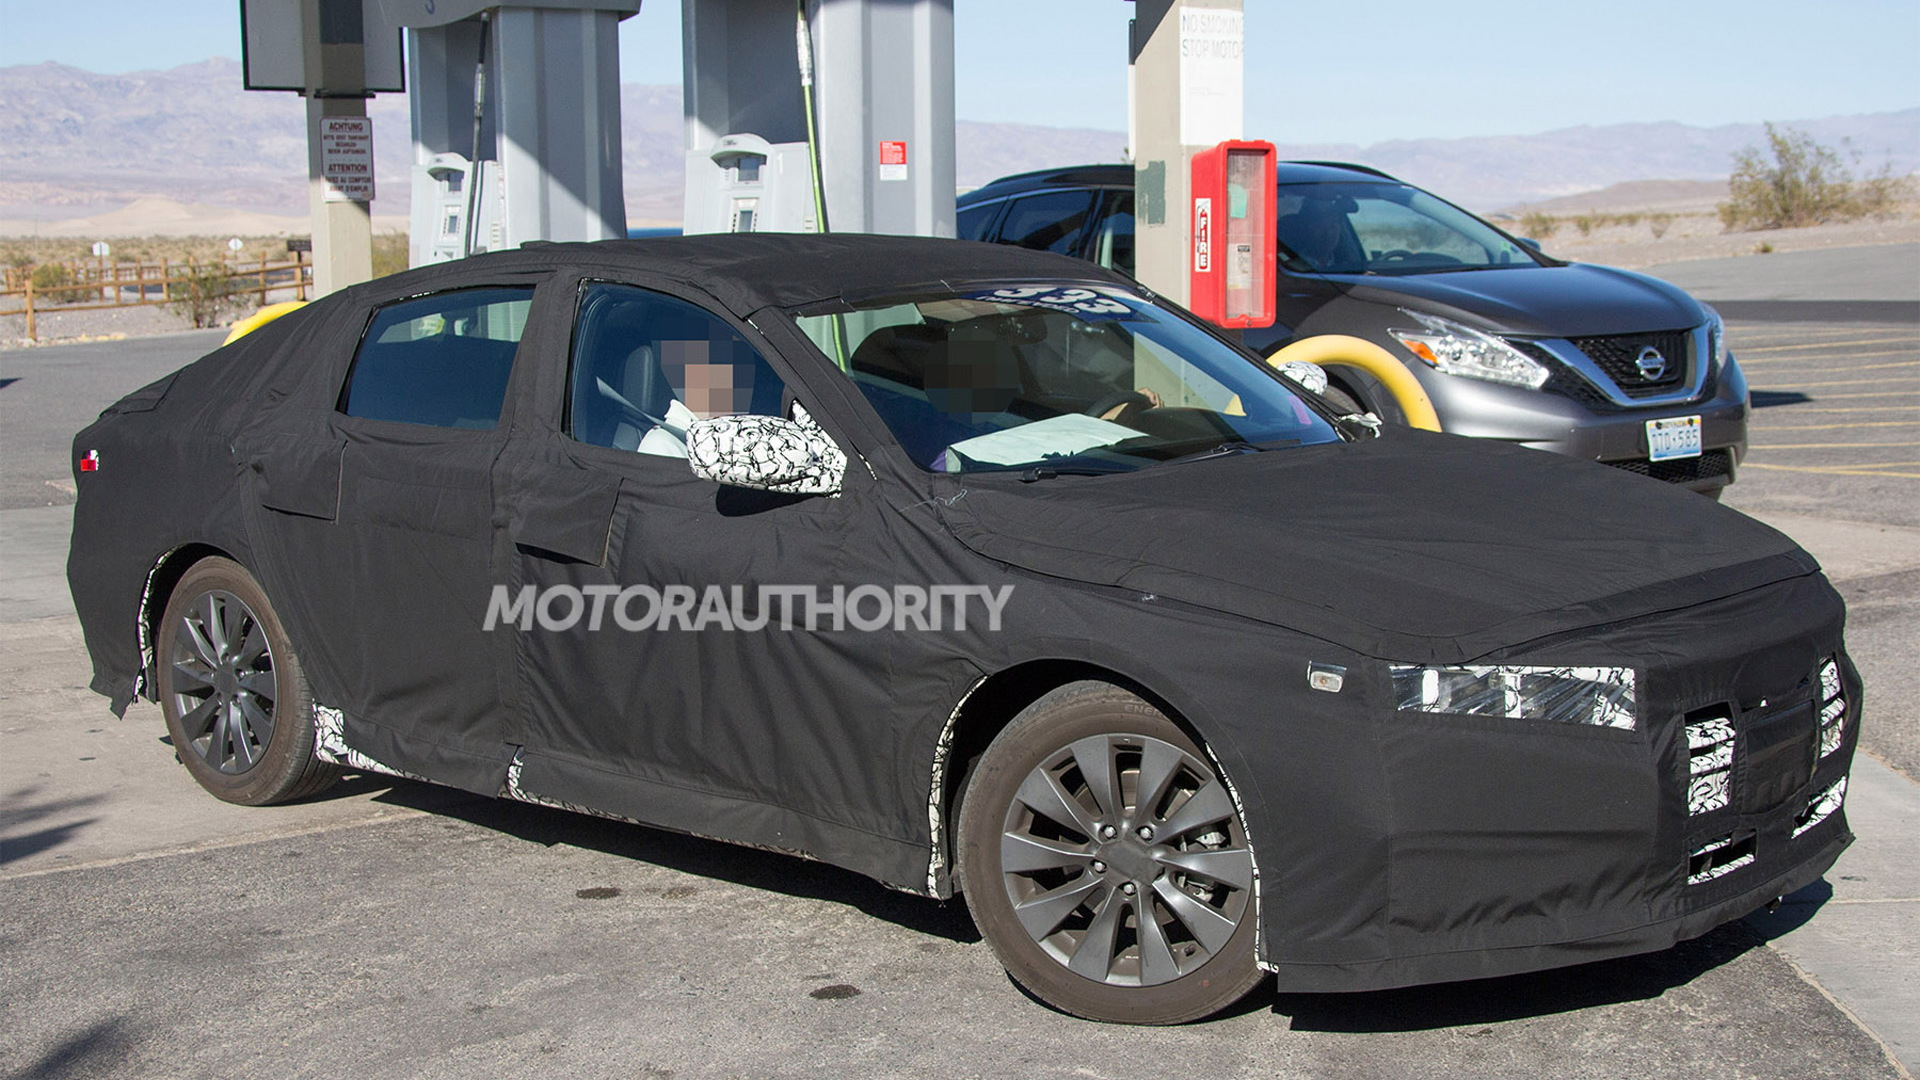 2018 Honda Accord spy shots - Image via S. Baldauf/SB-Medien